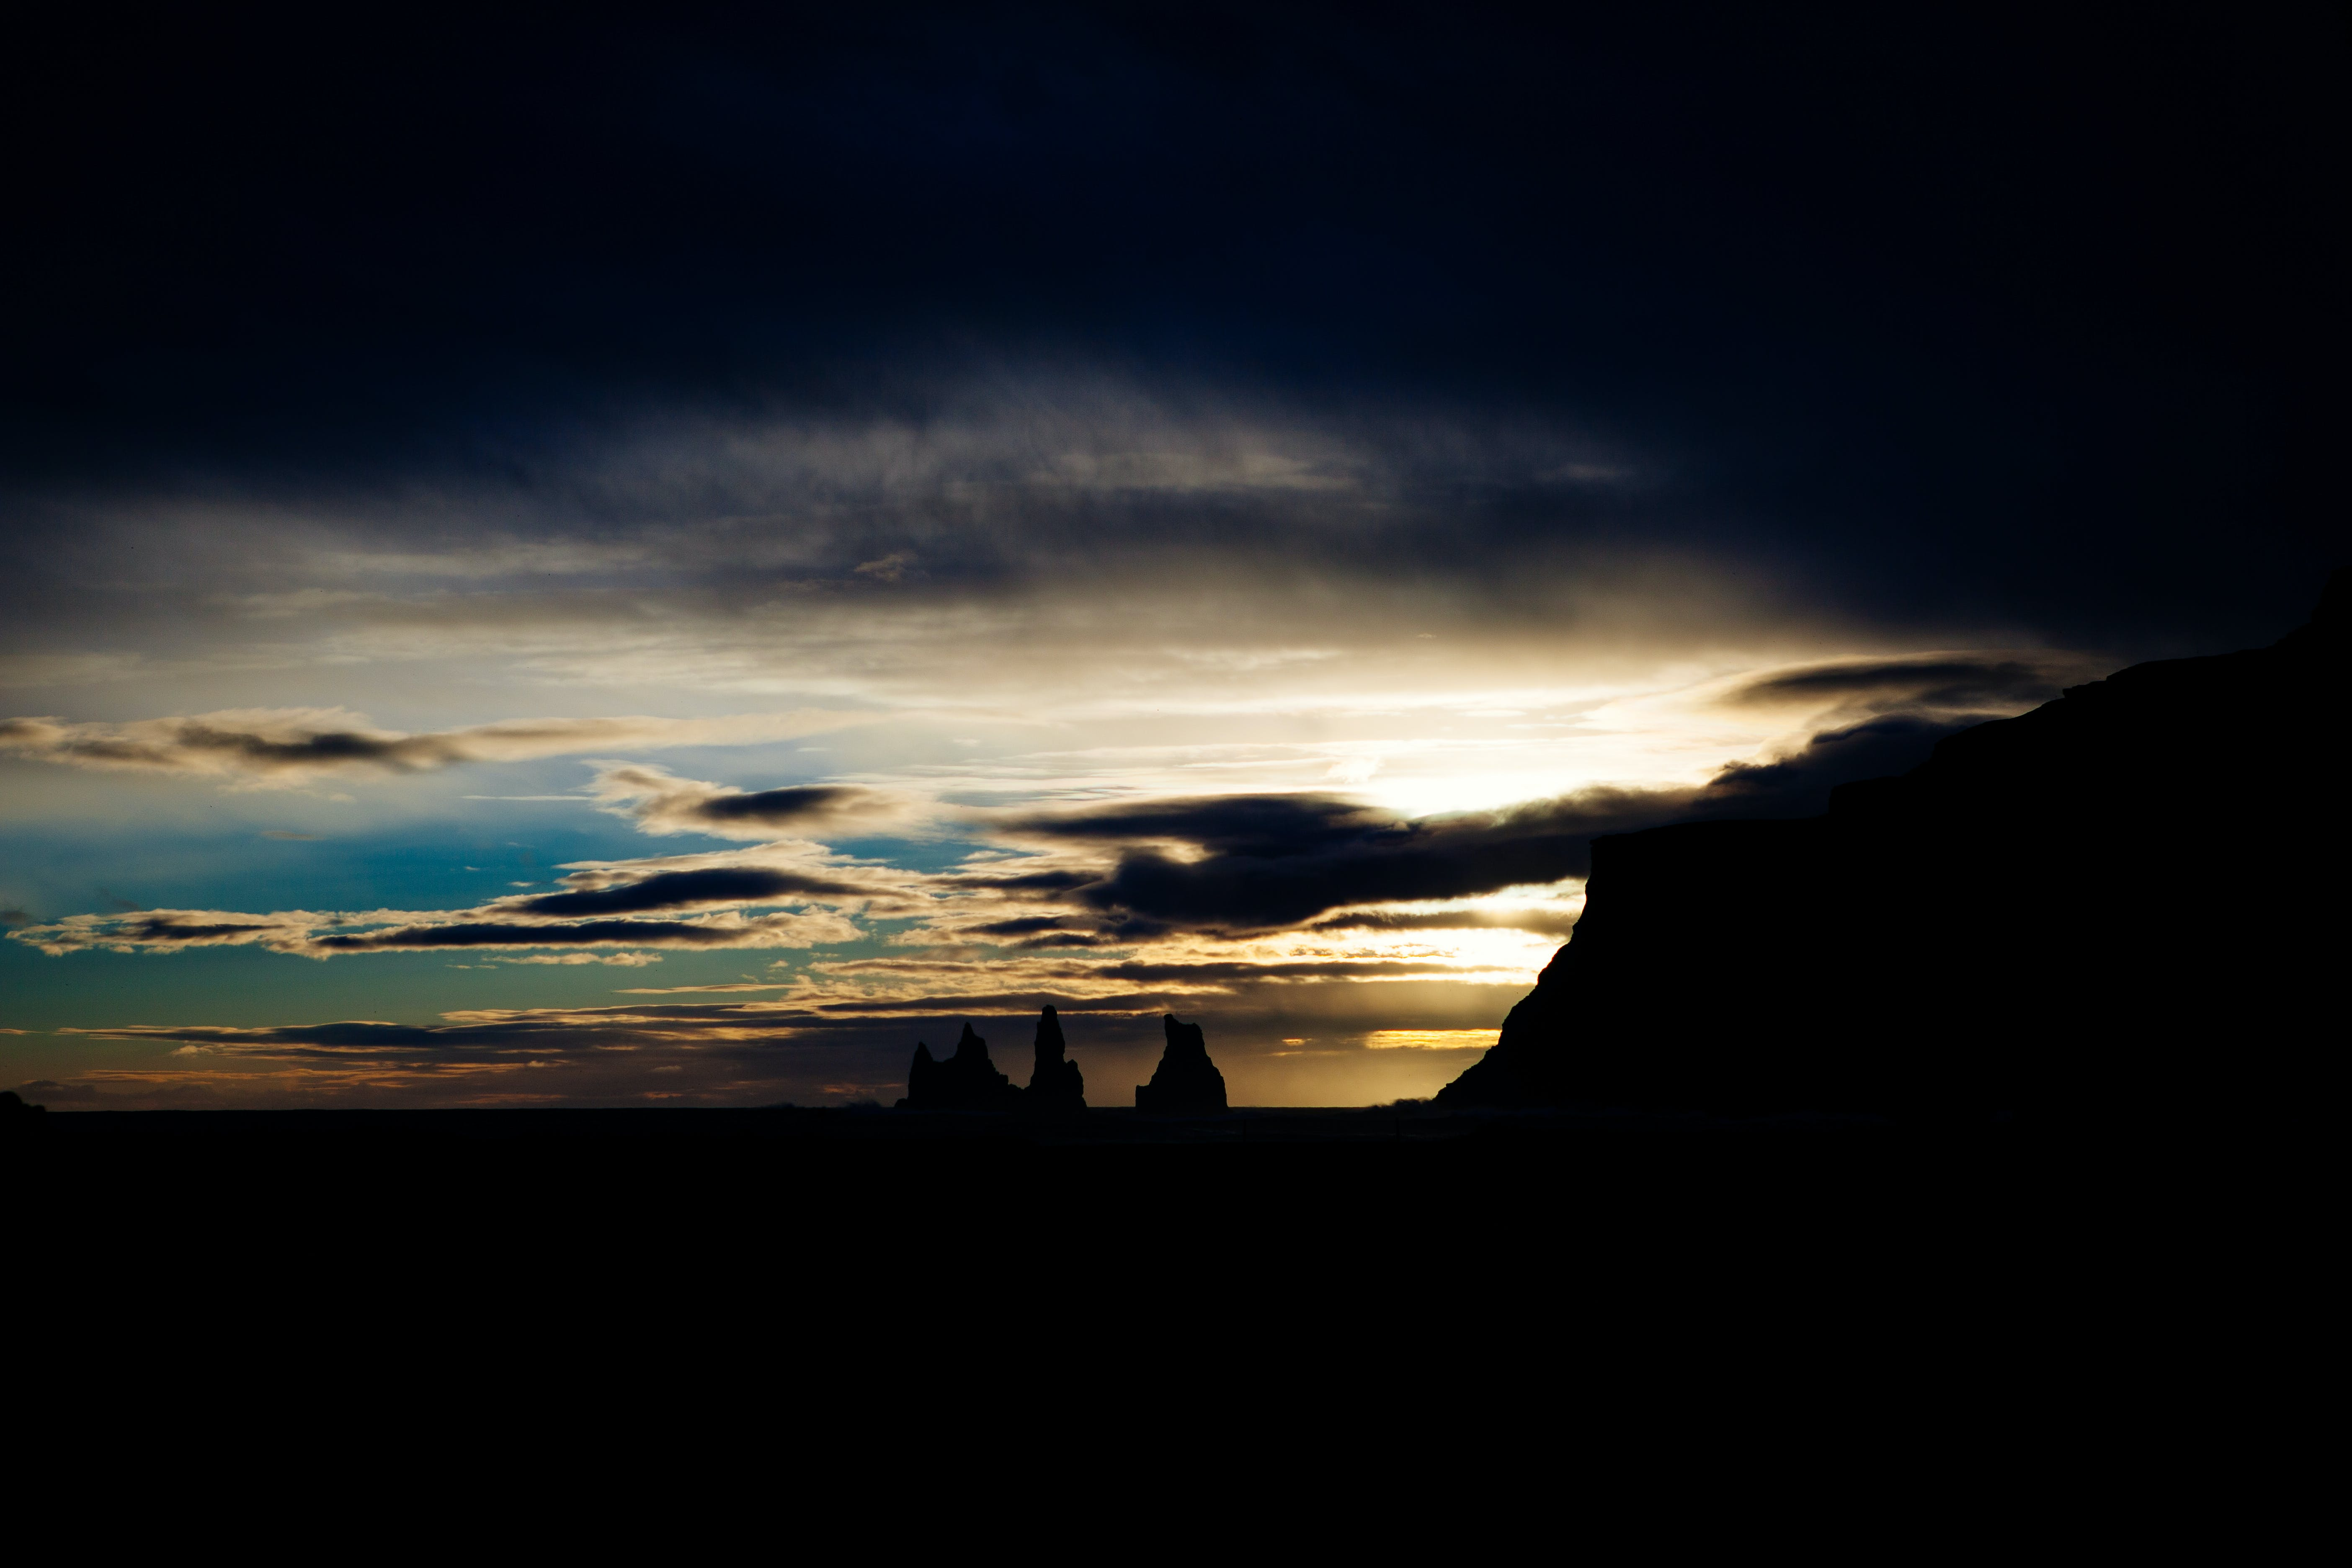 Silhouette of Rock Formations Under Cloudy Sky